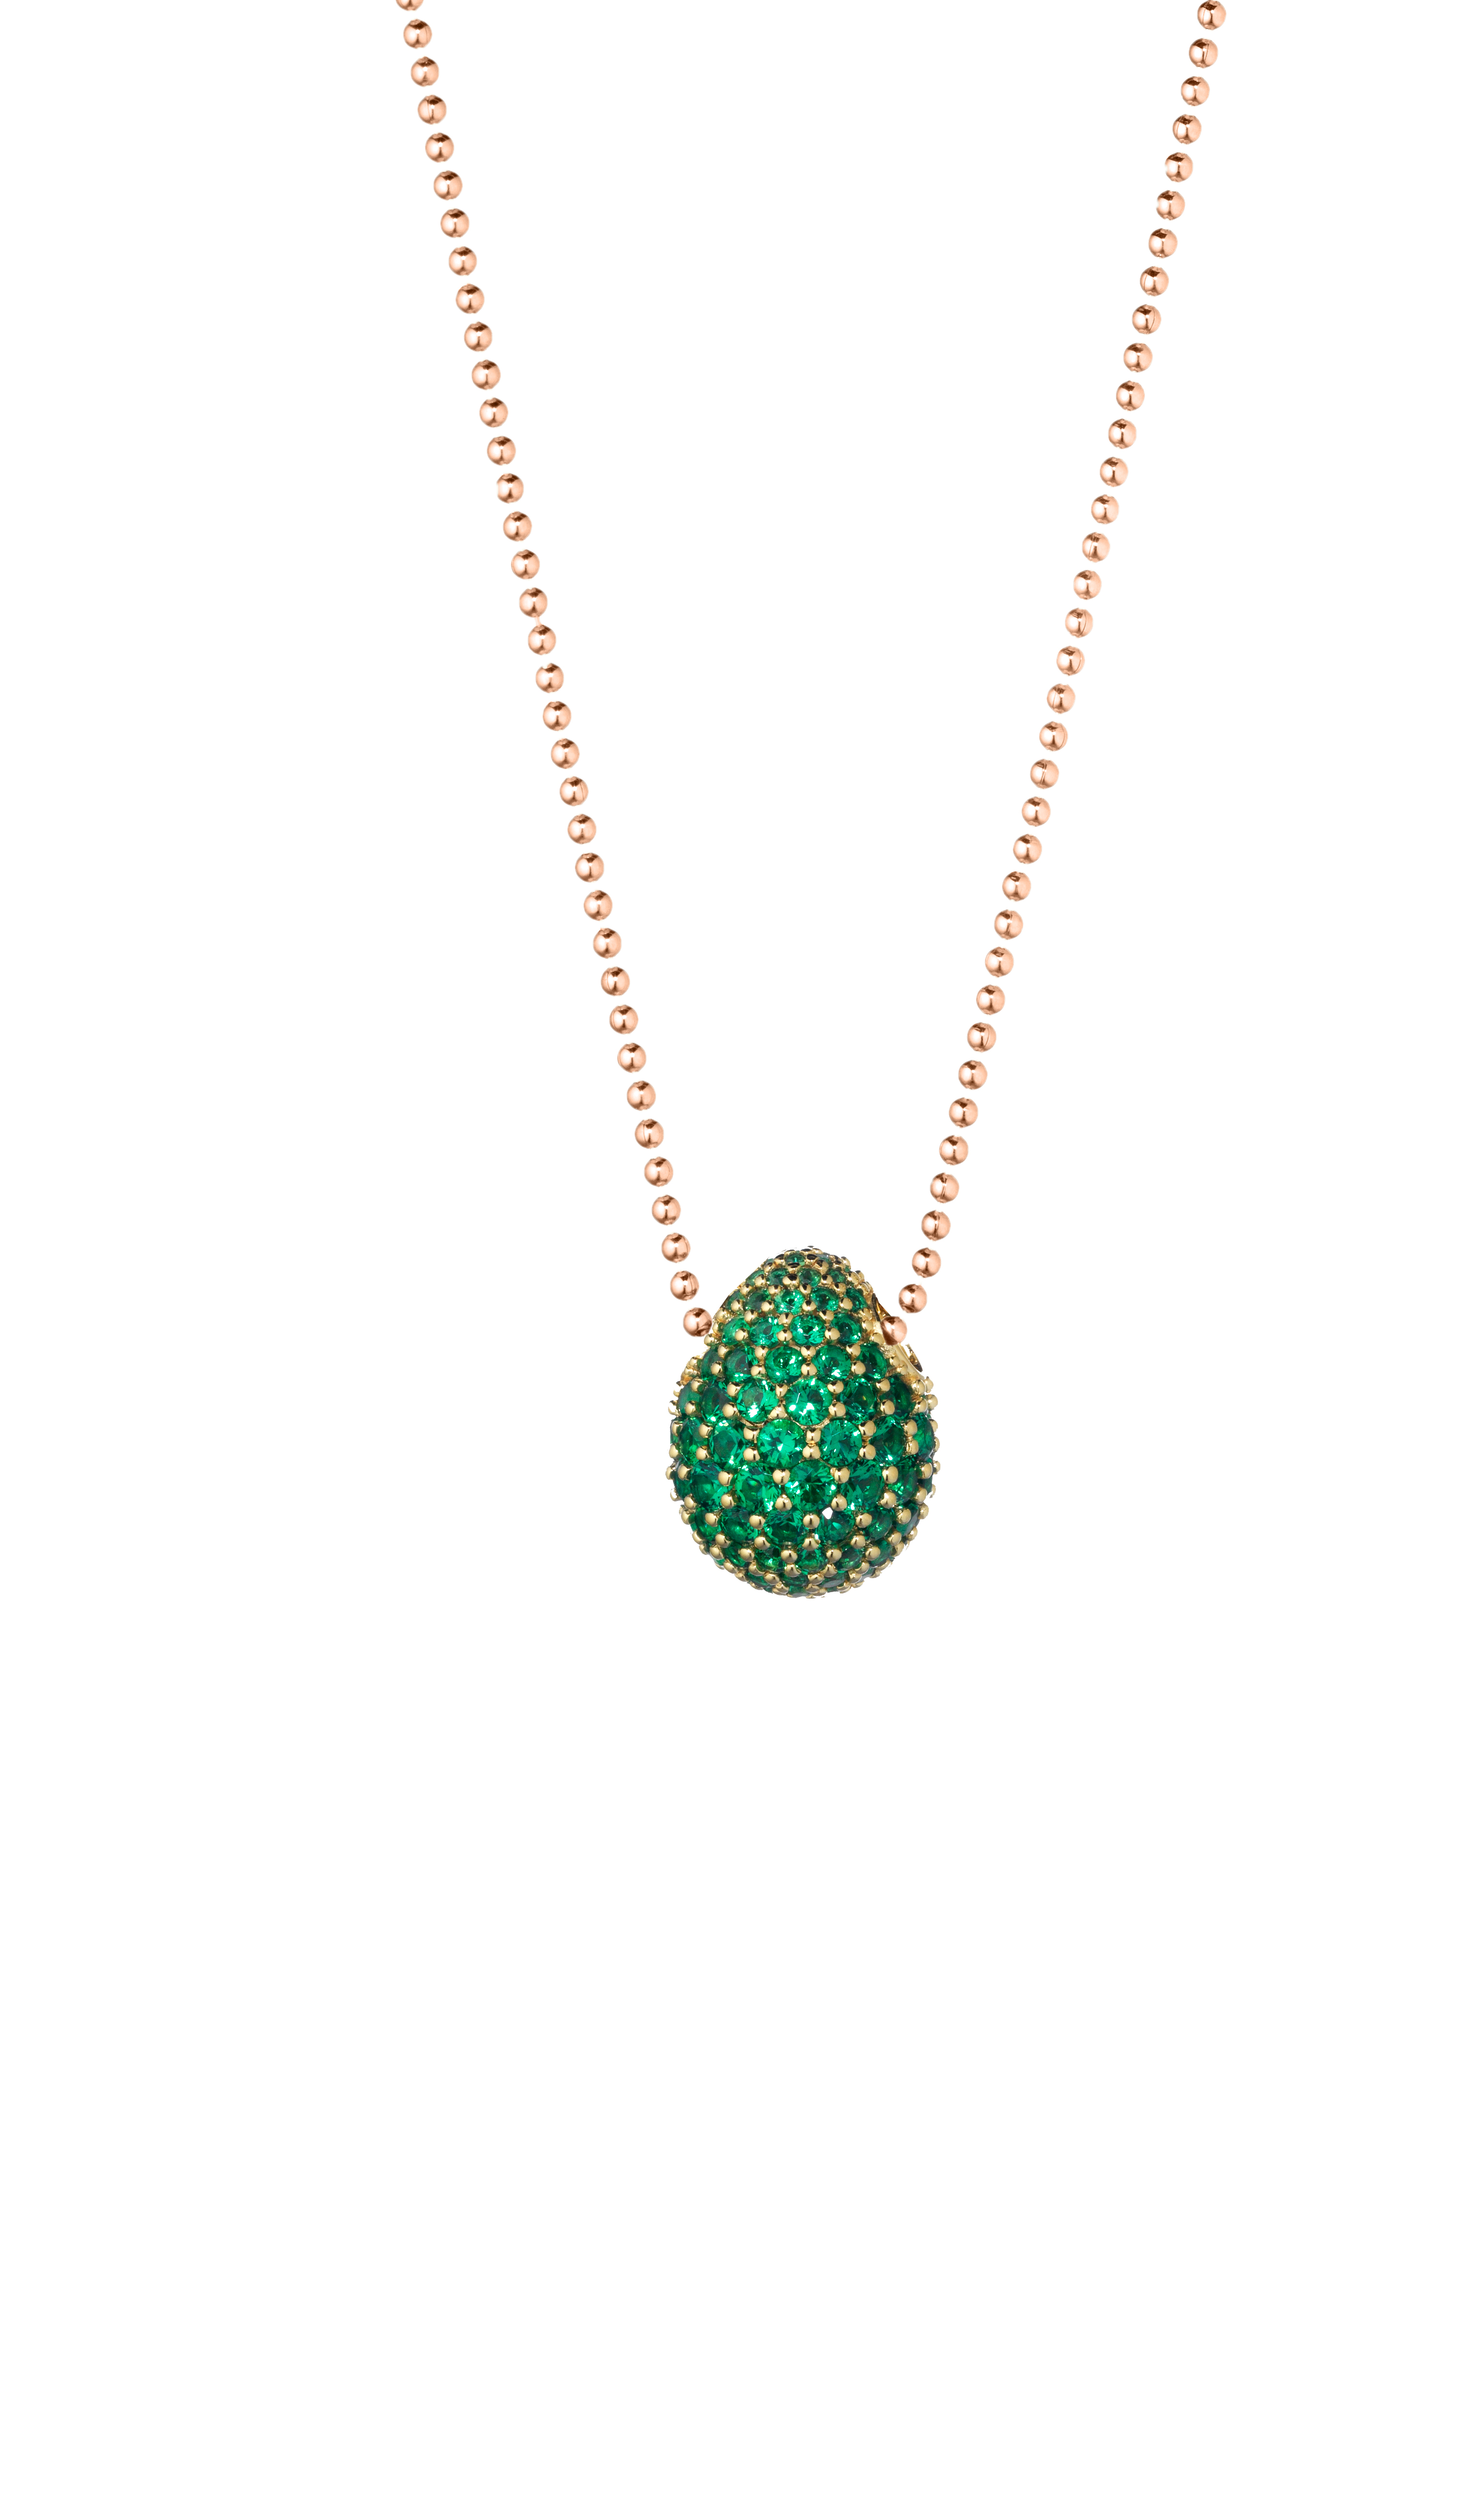 Collana Green Eye N 9 Faberge Medium